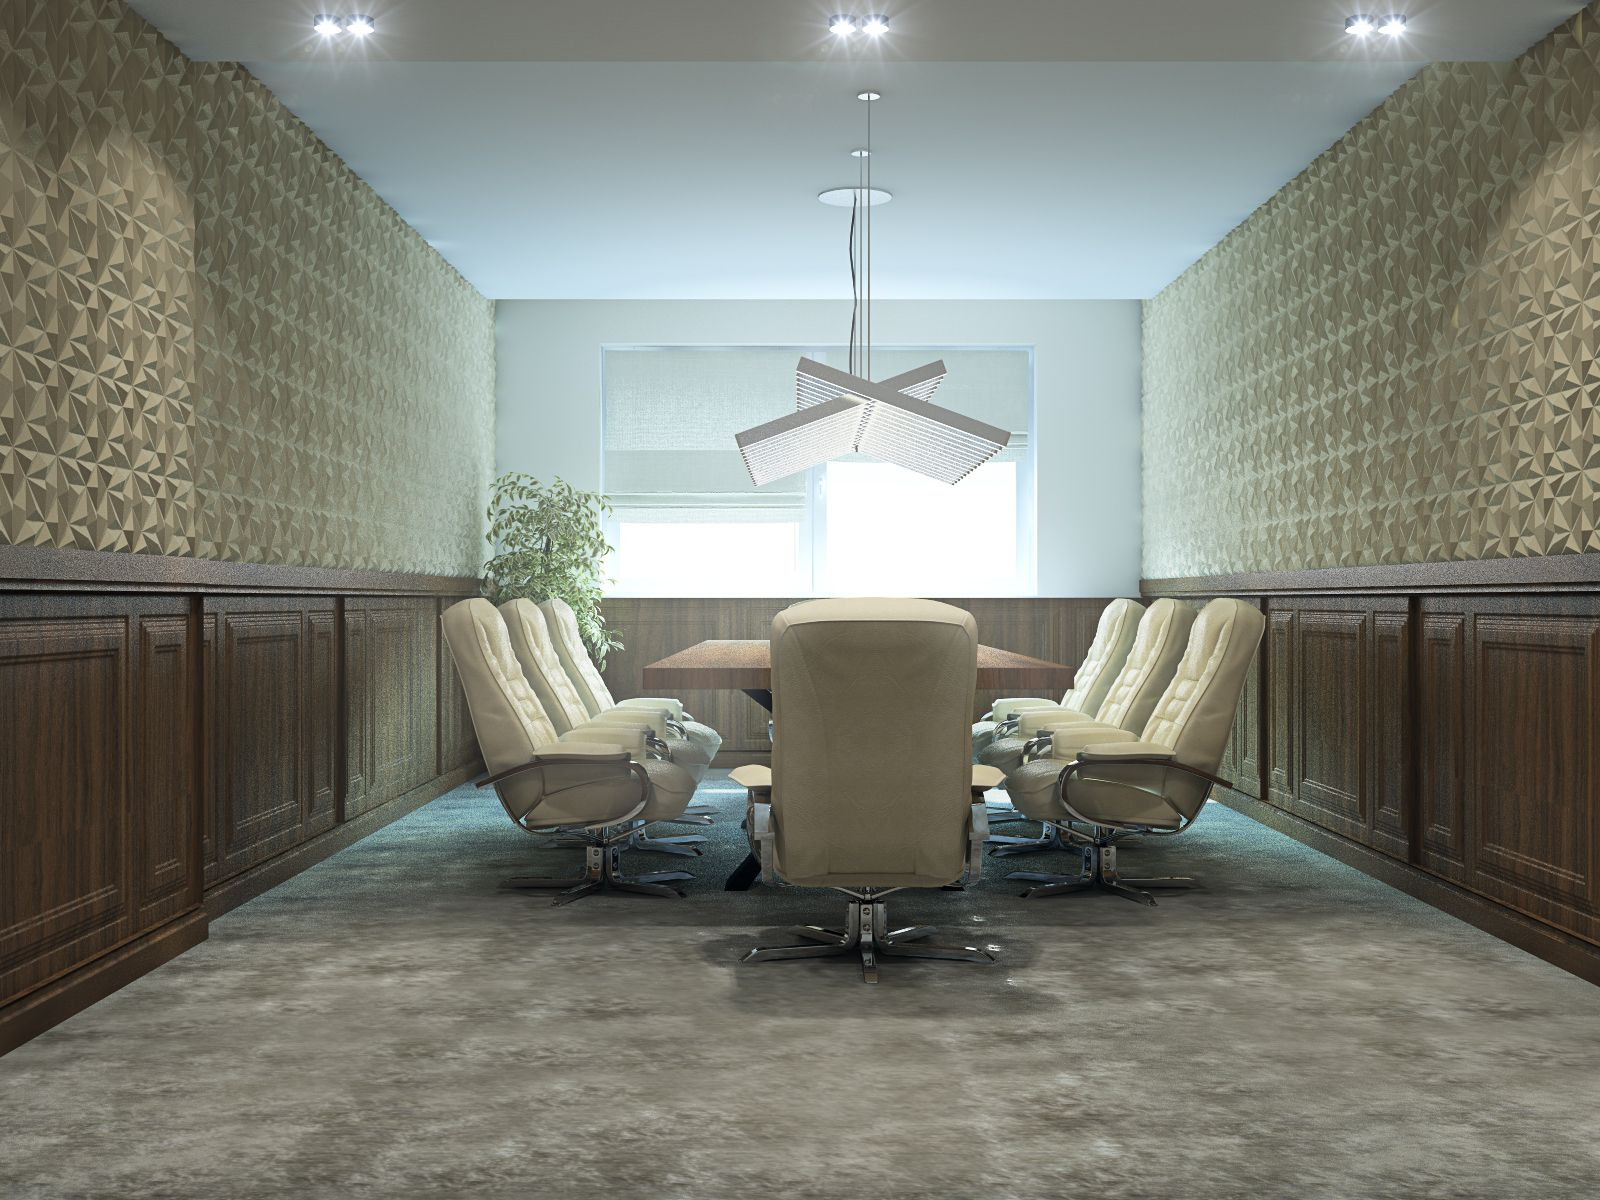 Office boarding room with Arte wallpaper and Vibia Rhythm ...